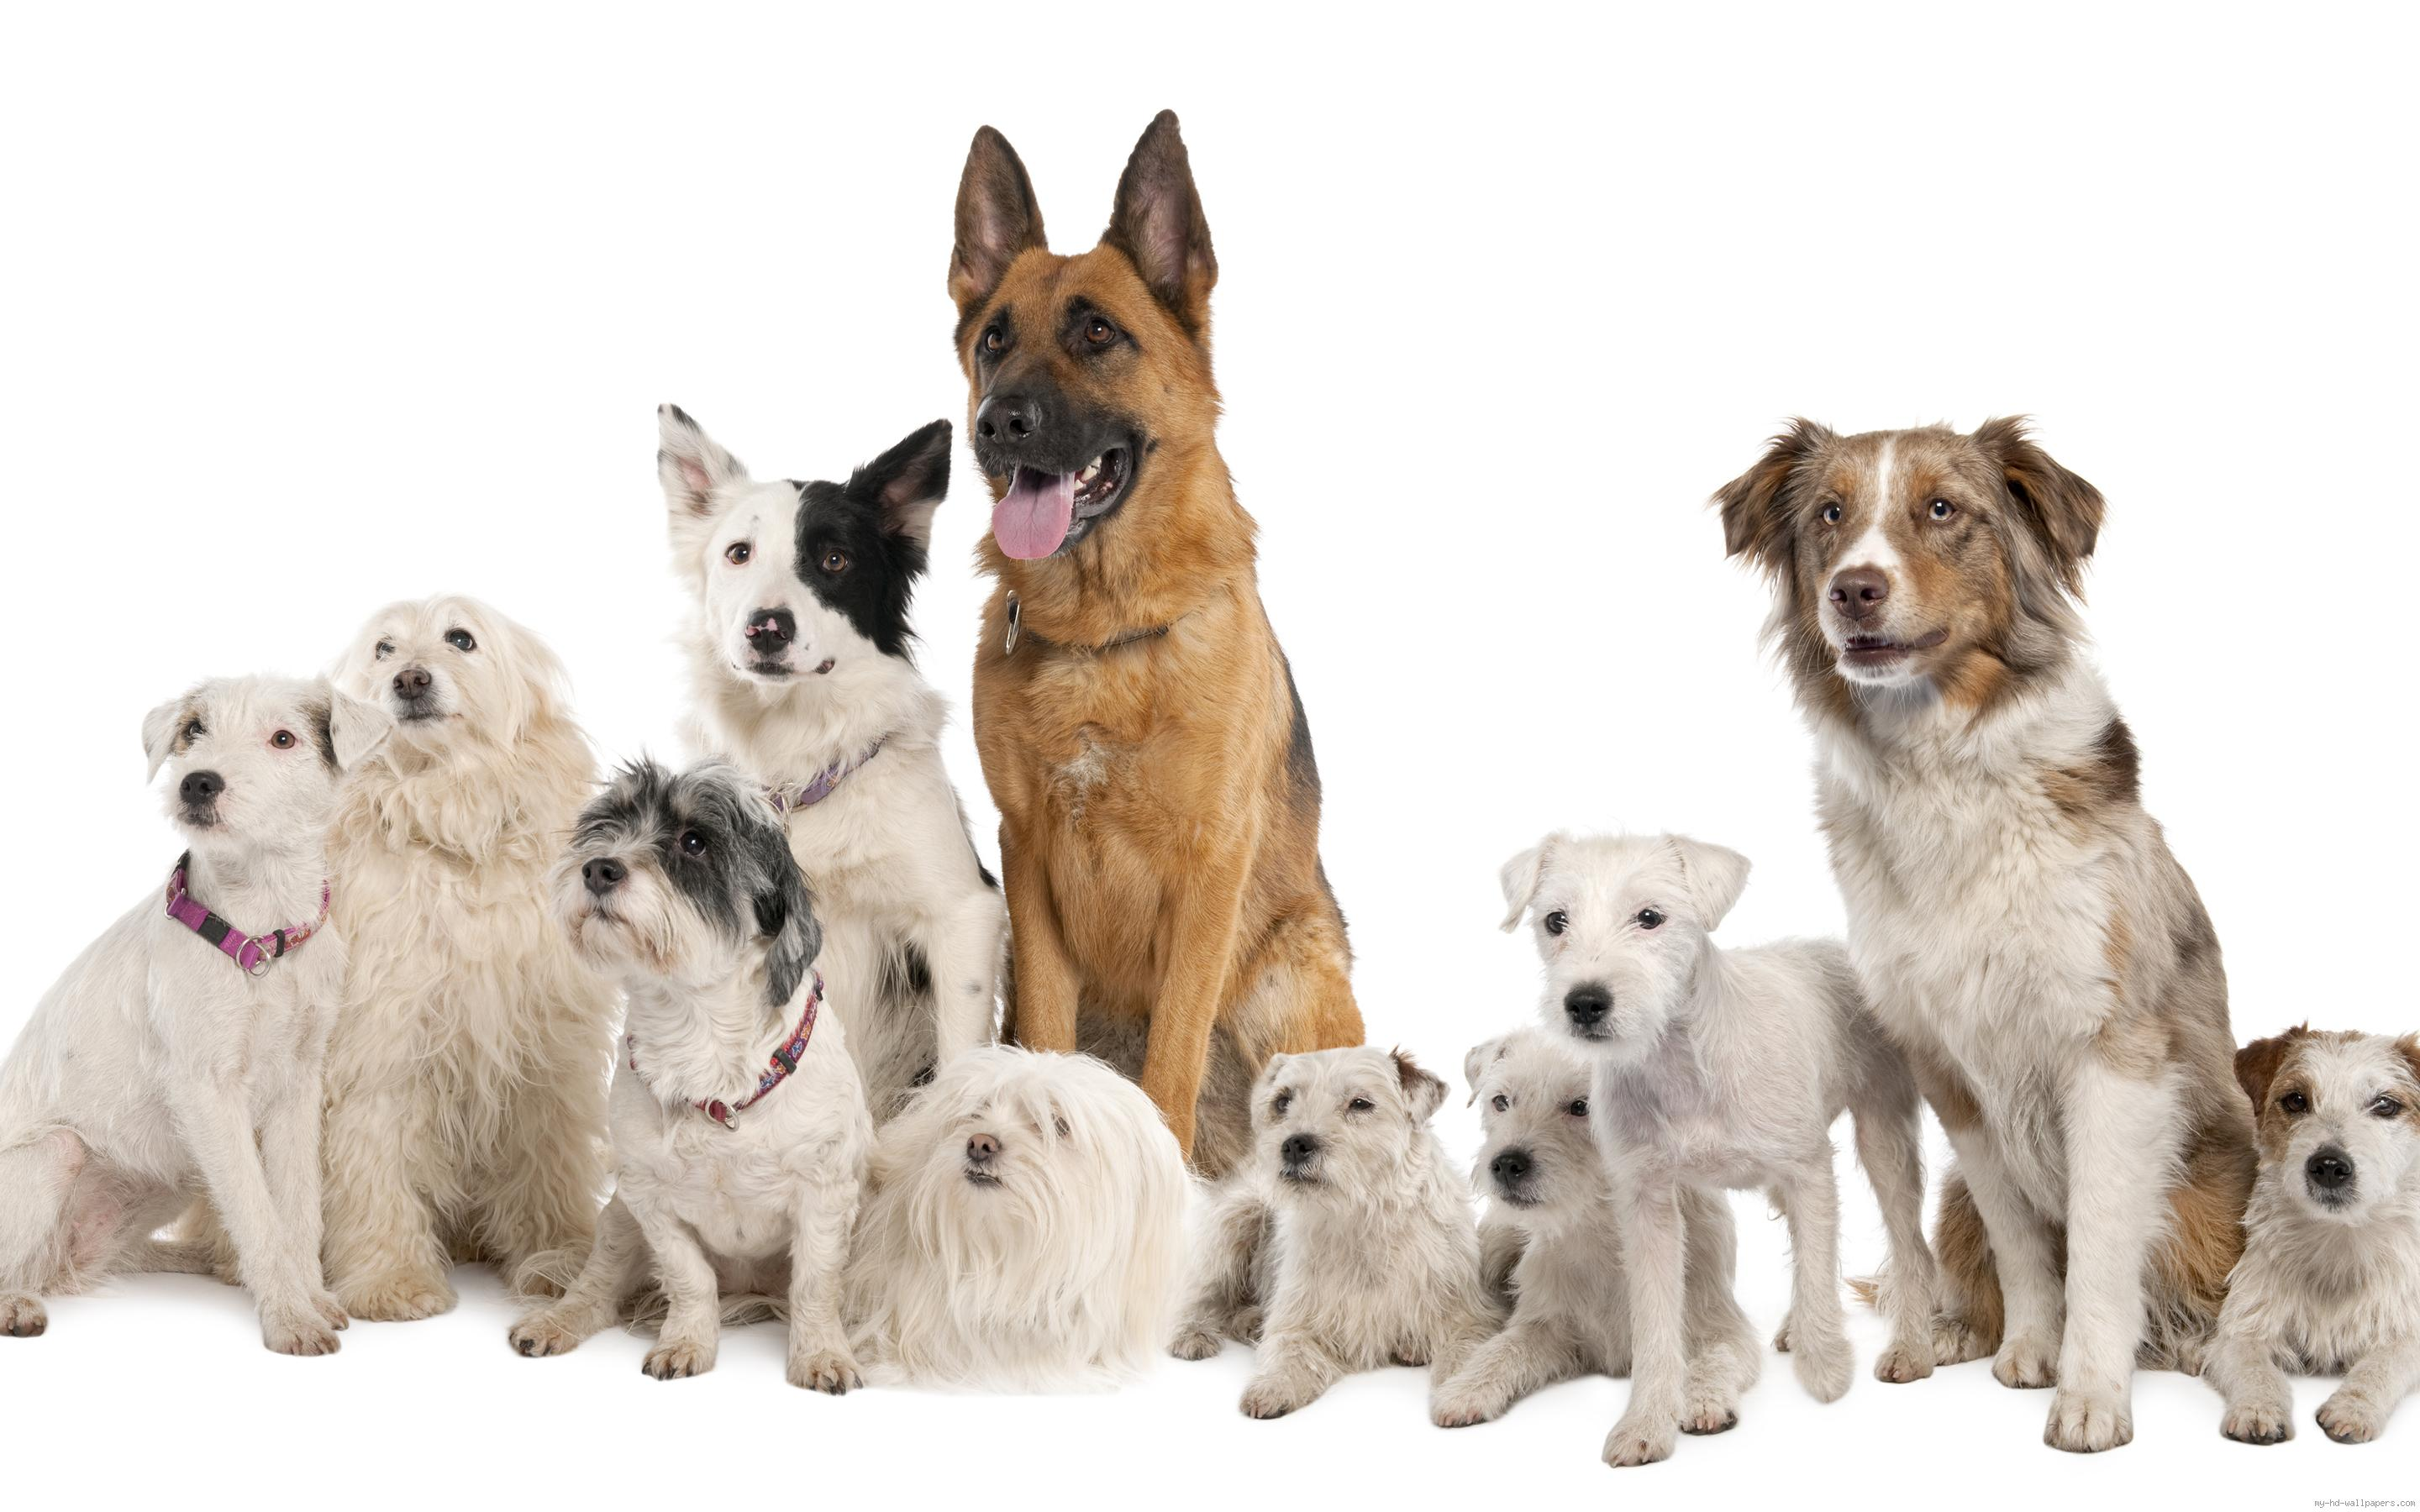 wall-1405244716-pack-of-dogs-on-a-white-background-1-.jpg